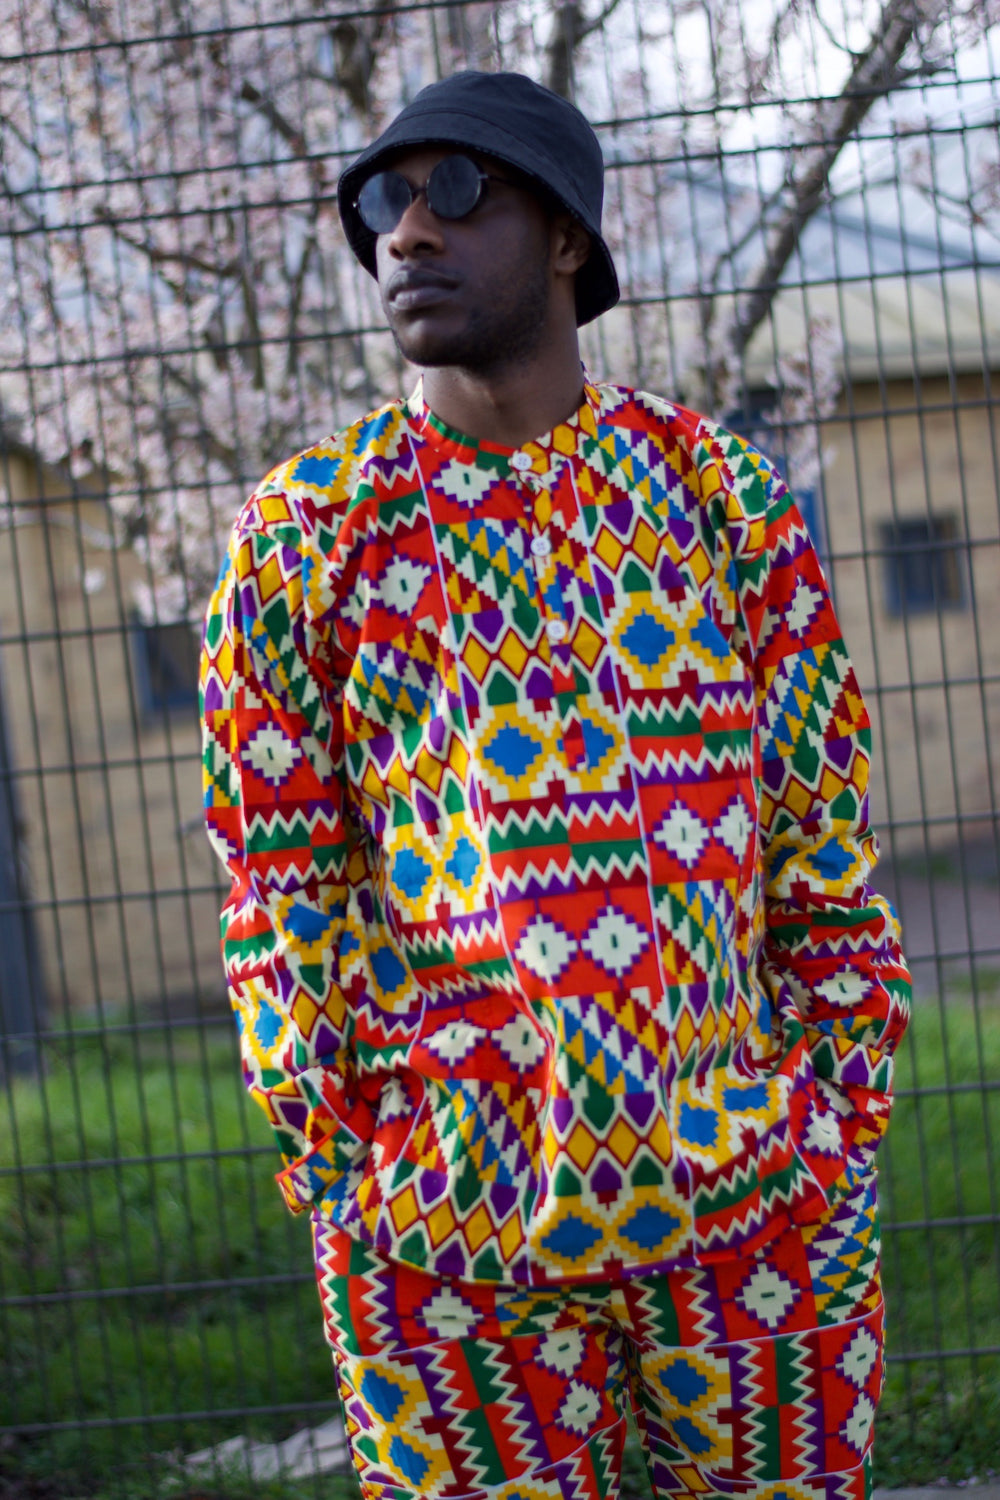 African Kente Suit in Orange African Print - Festival Outfit - Continent Clothing